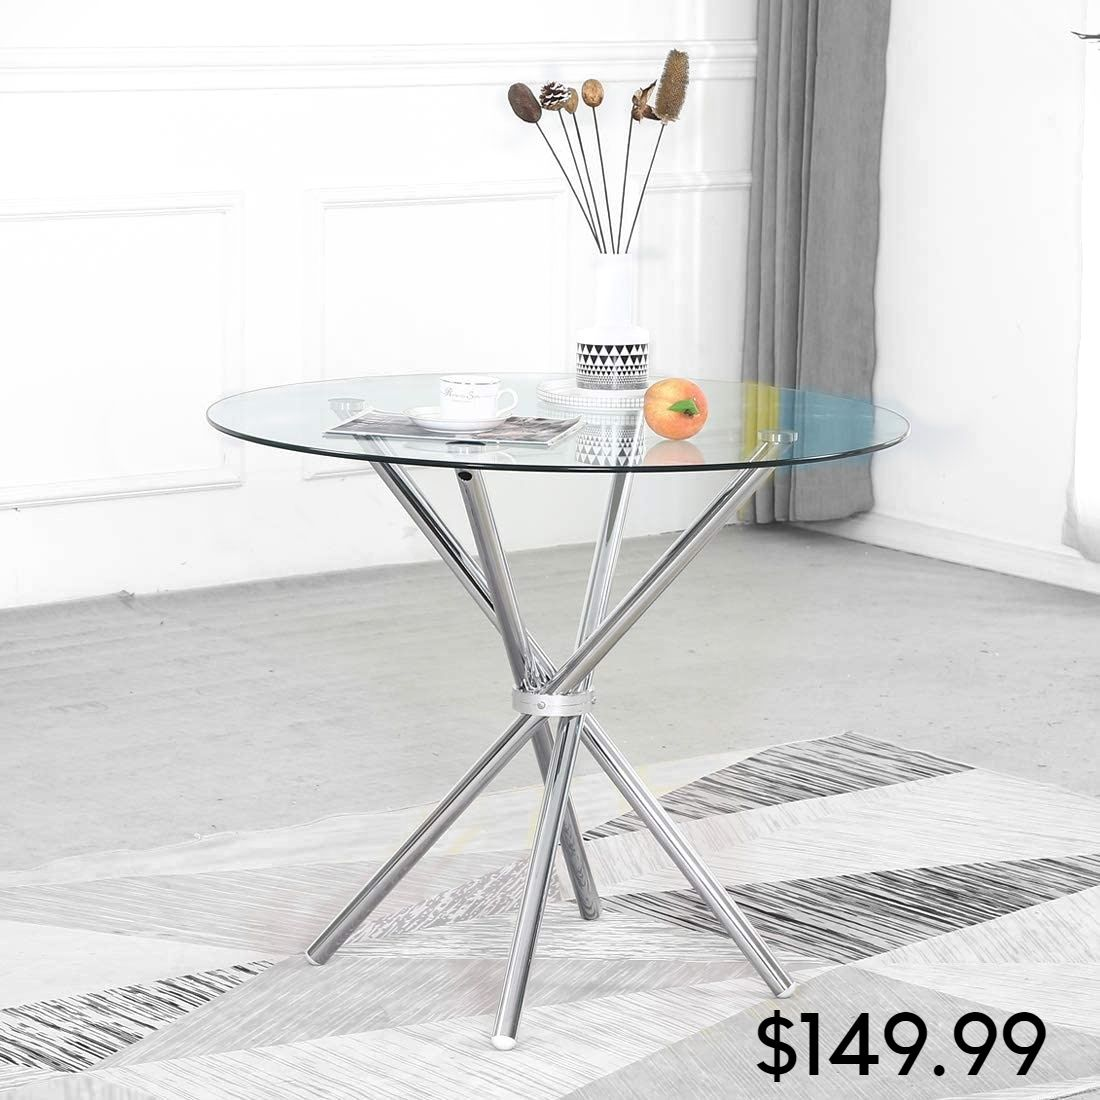 Modern Round Dining Table With Four Table Legs